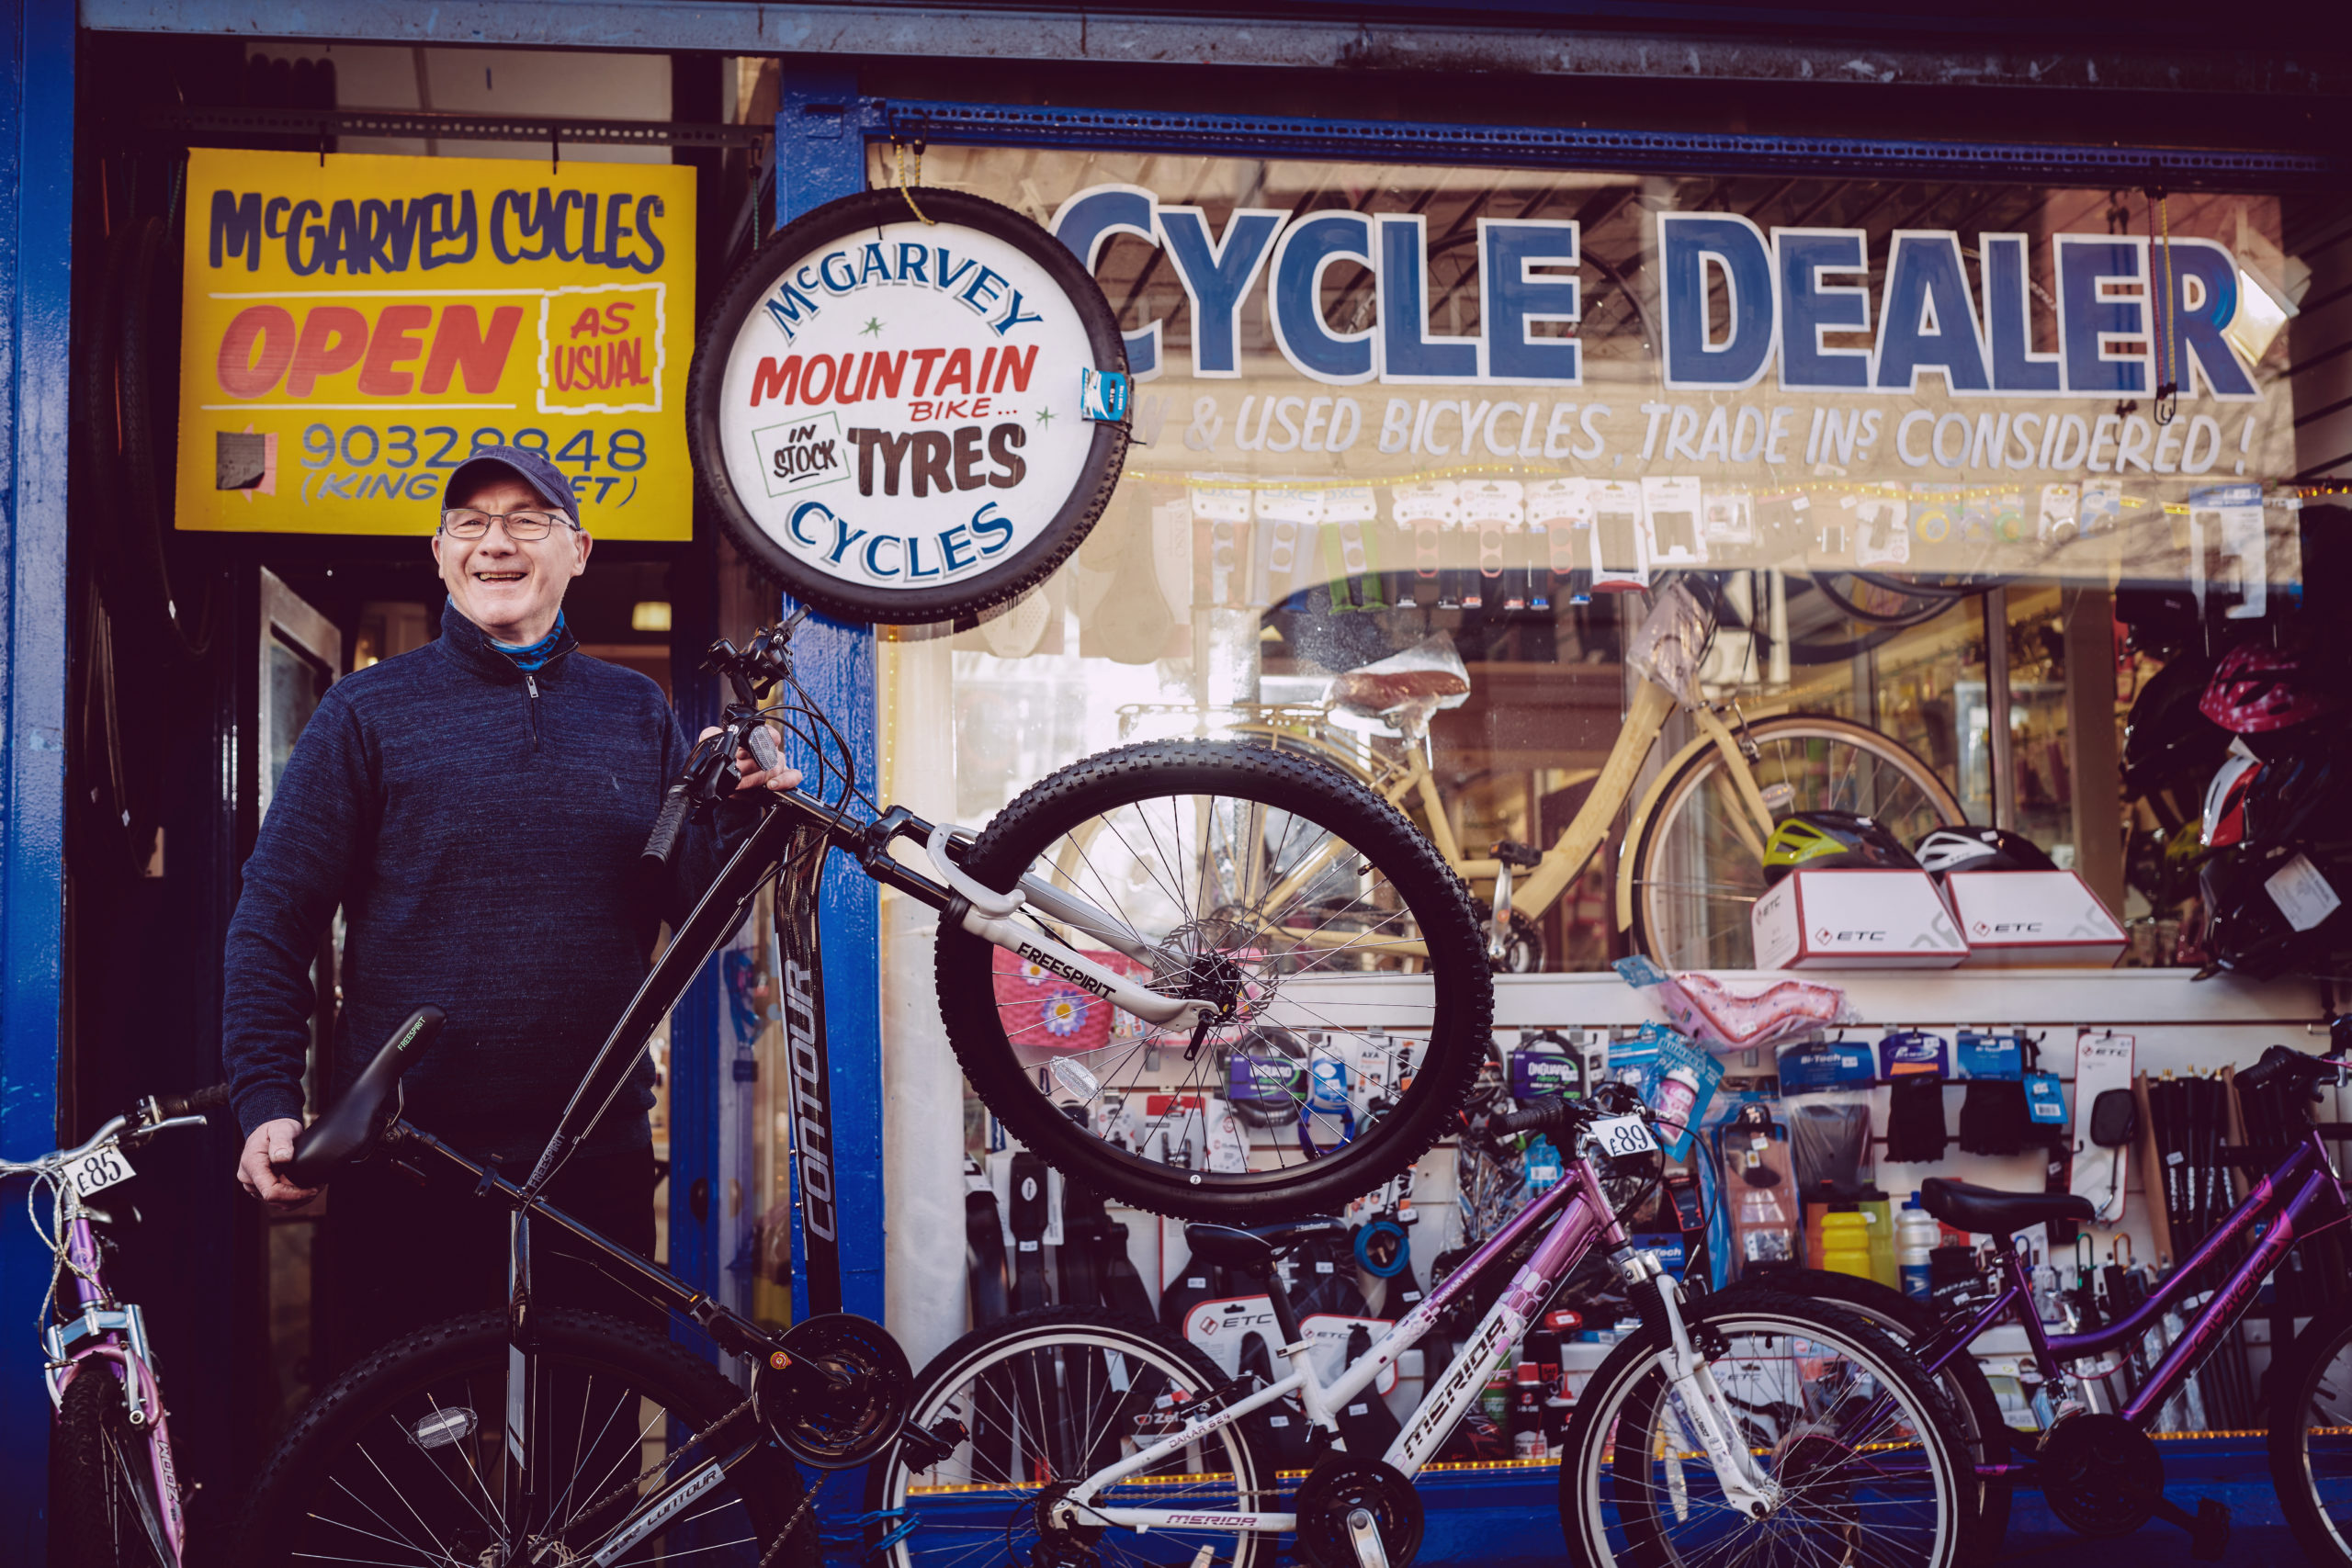 McGarvey Cycles. We are a long established family business serving cyclists for over 100 years. Our experience in supplying bicycle parts and accessories is second to none